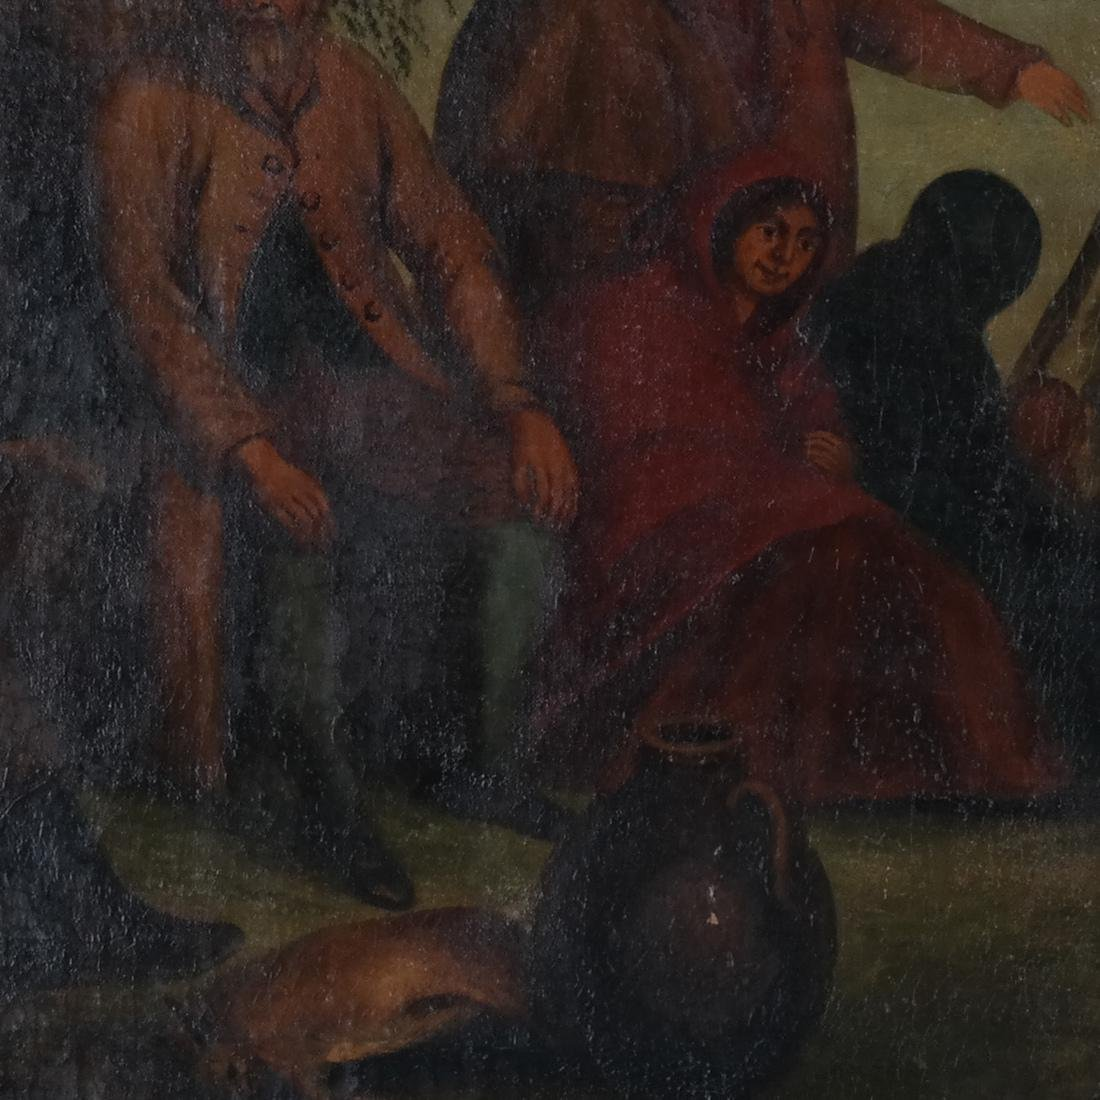 Camp Scene with Figures, Oil on Canvas - 2